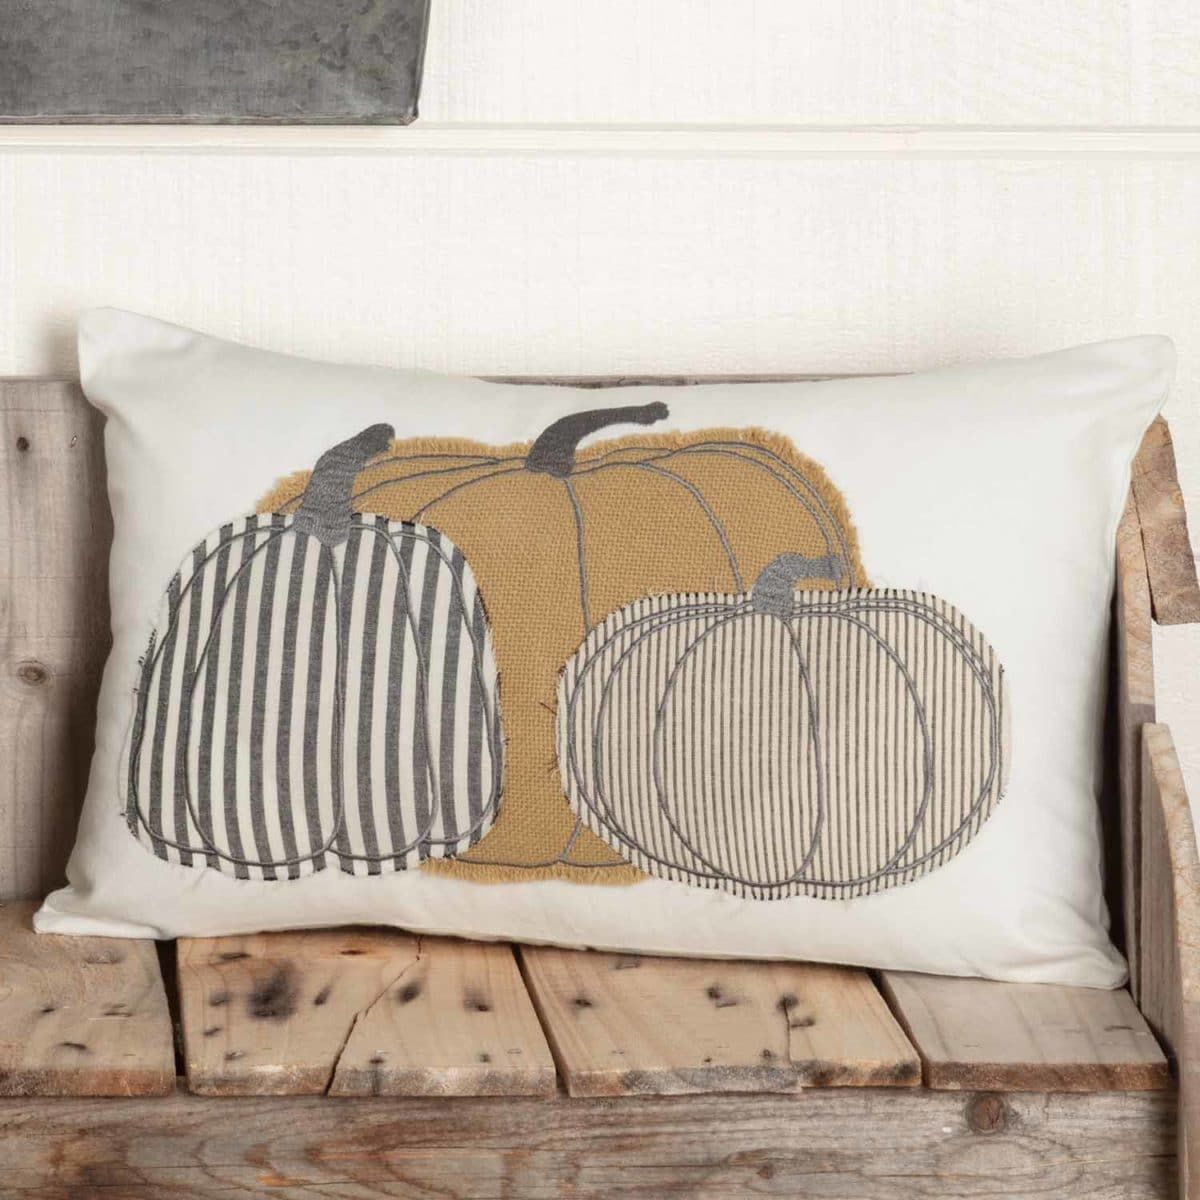 Pumpkin Patch Applique 12 X 20 Pillow Cover Piper Classics Fall Pillows Pumpkin Pillows Decorative Pillow Covers